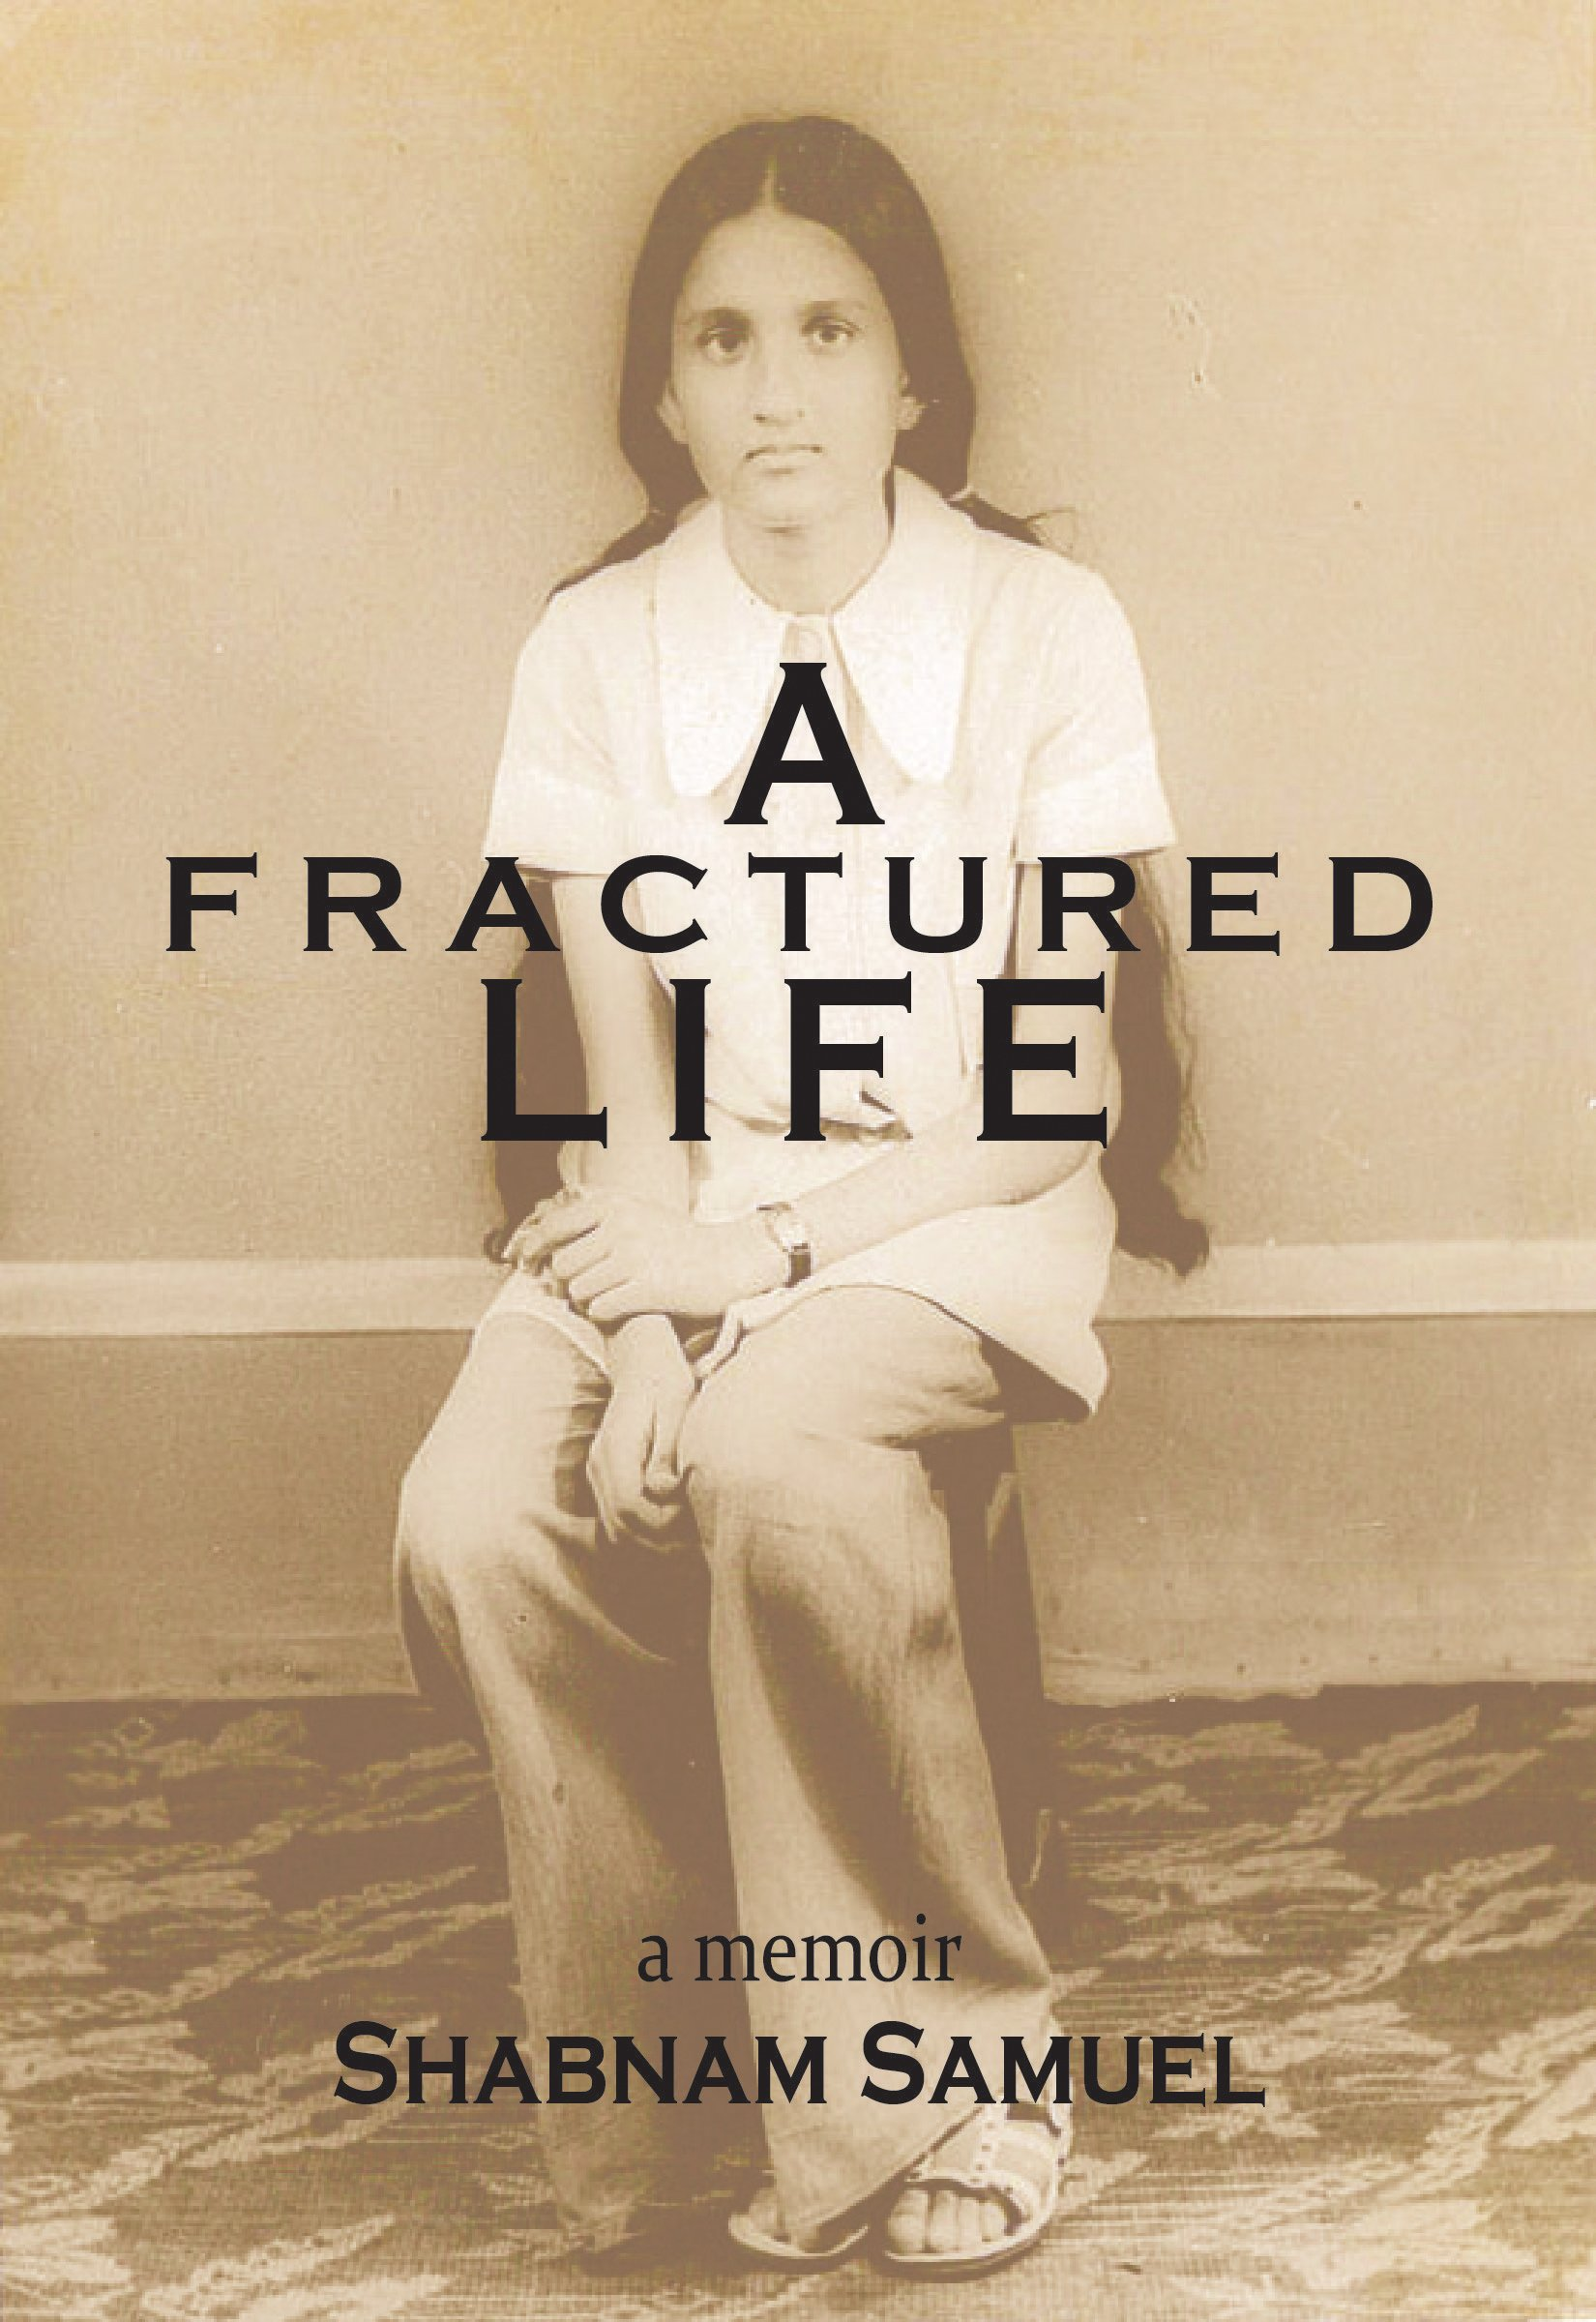 A FRACTURED LIFE - AUTHOR: Shabnam SamuelISBN: 173208159X (ISBN13: 9781732081598)PUBLISHER: Green Place BooksRELEASE DATE: Sep 19th, 2018PAGES: 206 pagesEDITION LANGUAGE: EnglishSETTING: India and USANOTE: Sent by the publisher in exchange of an honest opinionREVIEW POLICY